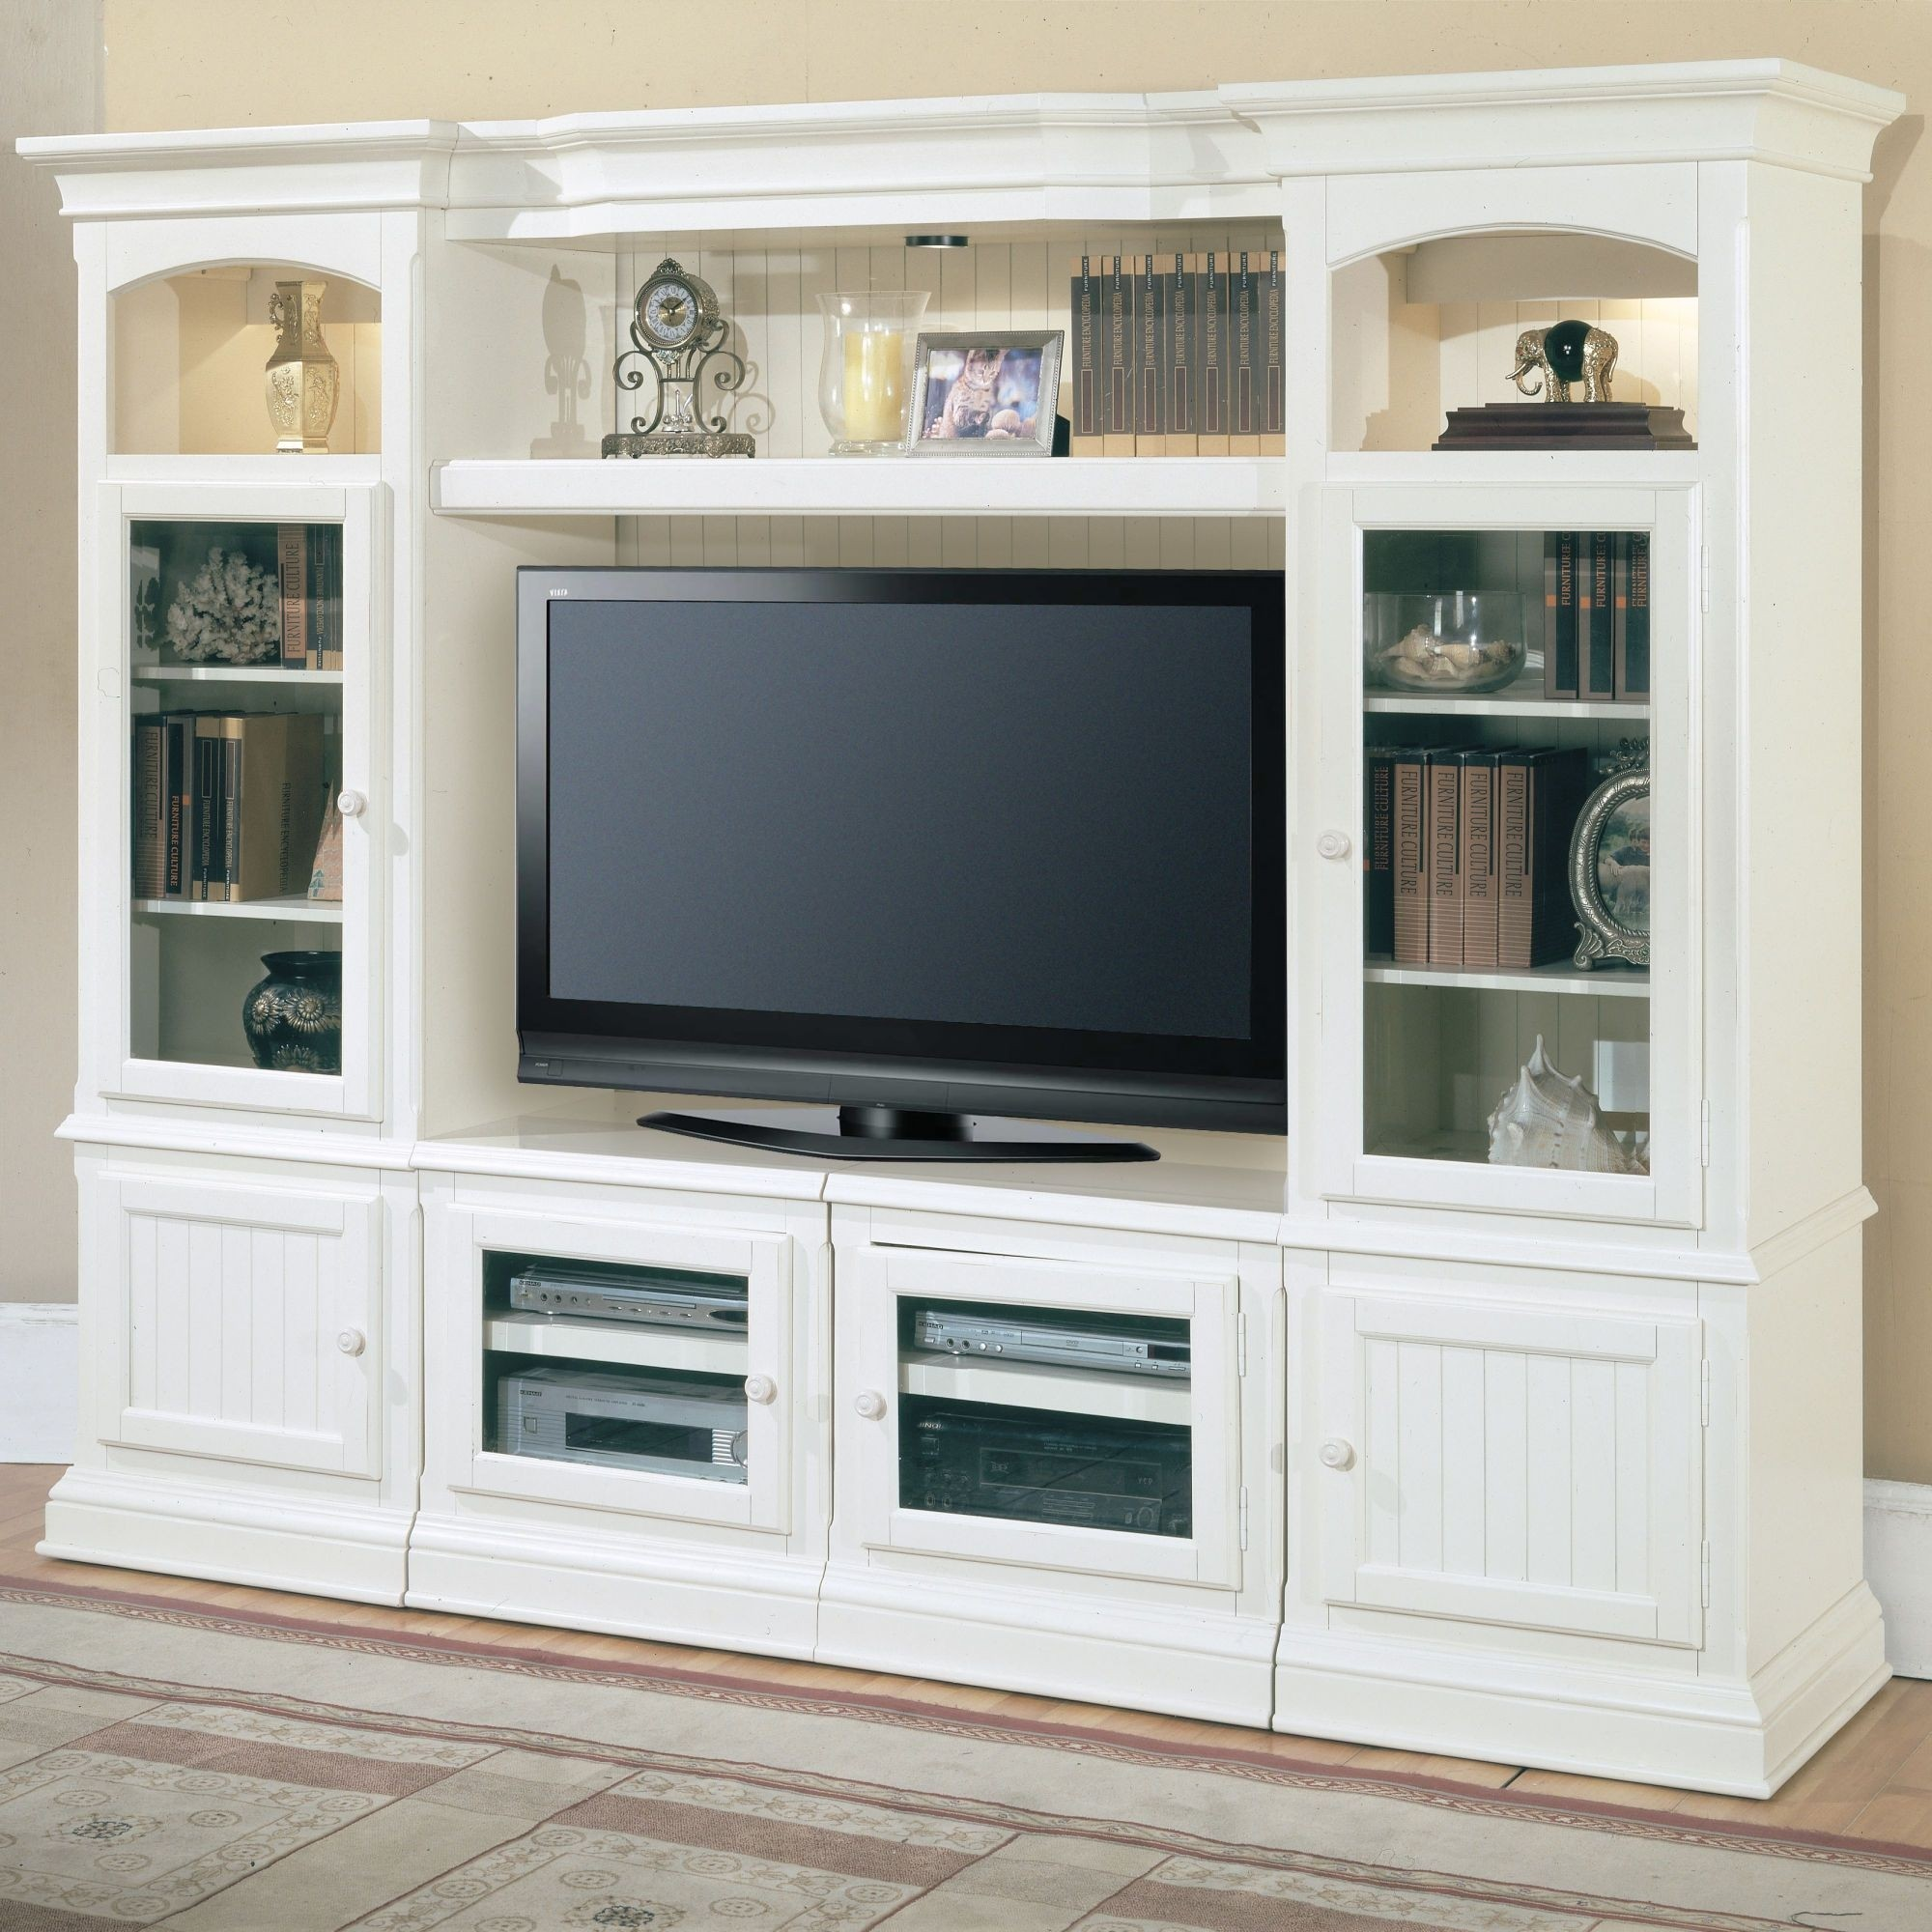 Glass Shelving Units Living Room 1. Glass TV Stand With Shelves. Parker  House Furniture Hartford Entertainment Center Har100 Set